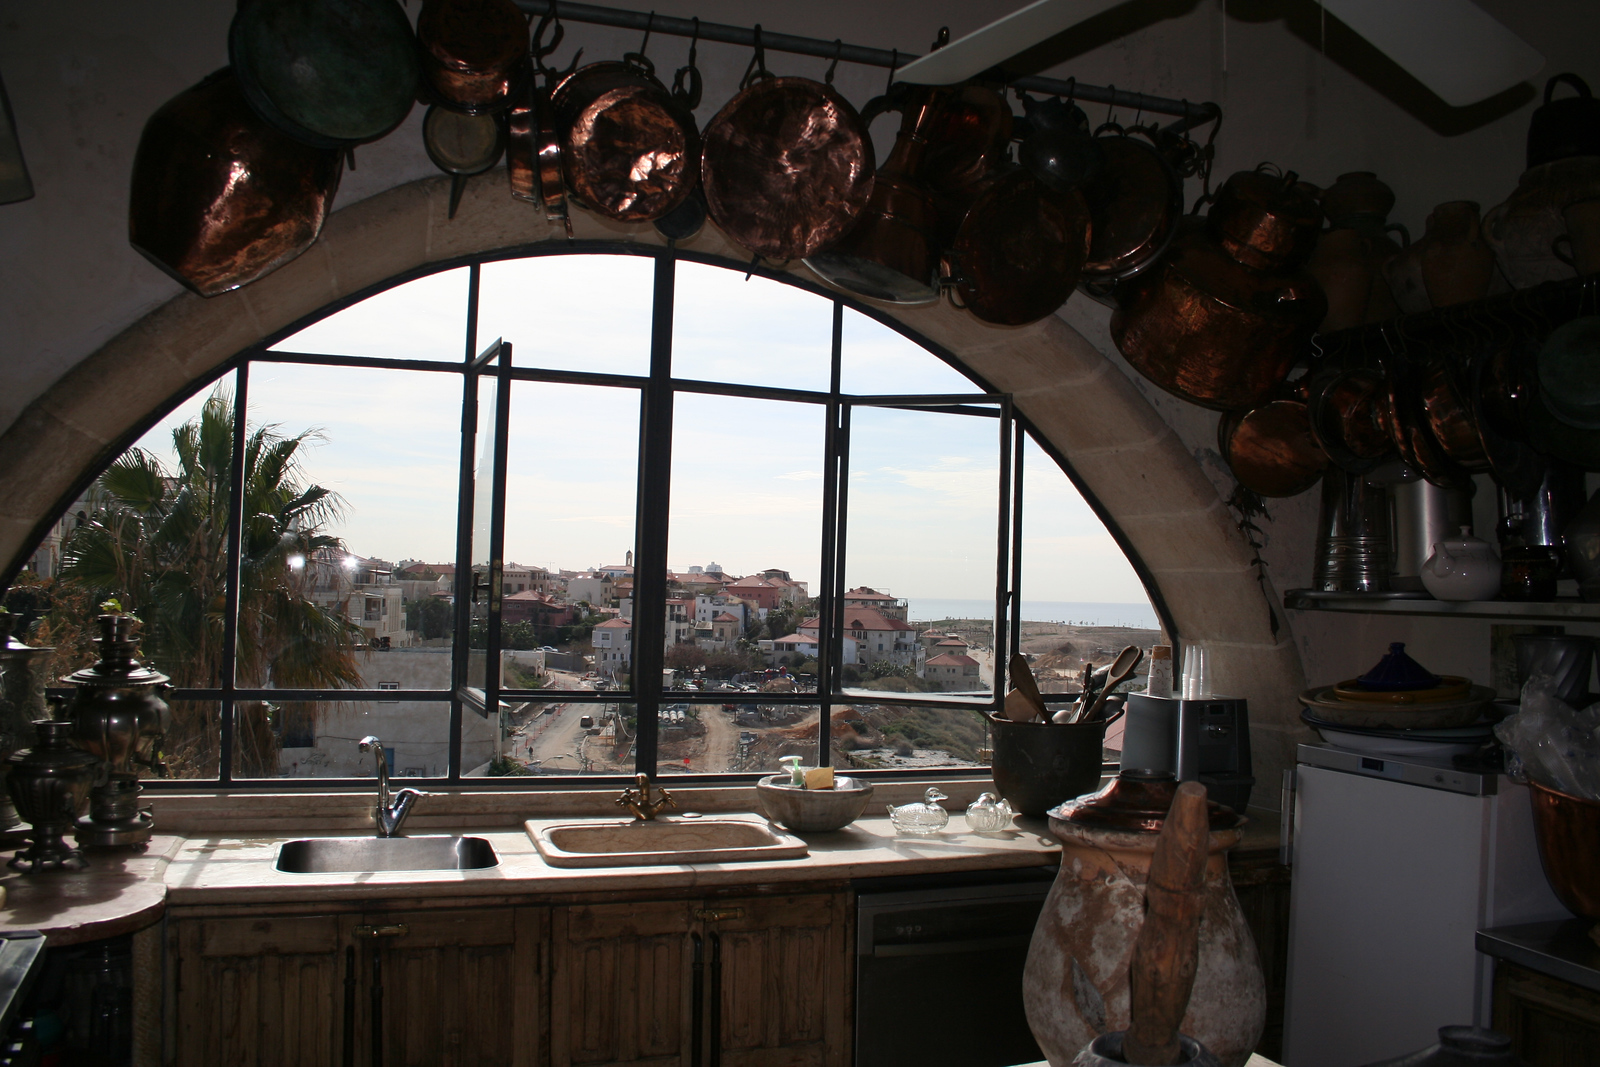 View from the kitchen in the Ilana Gur house